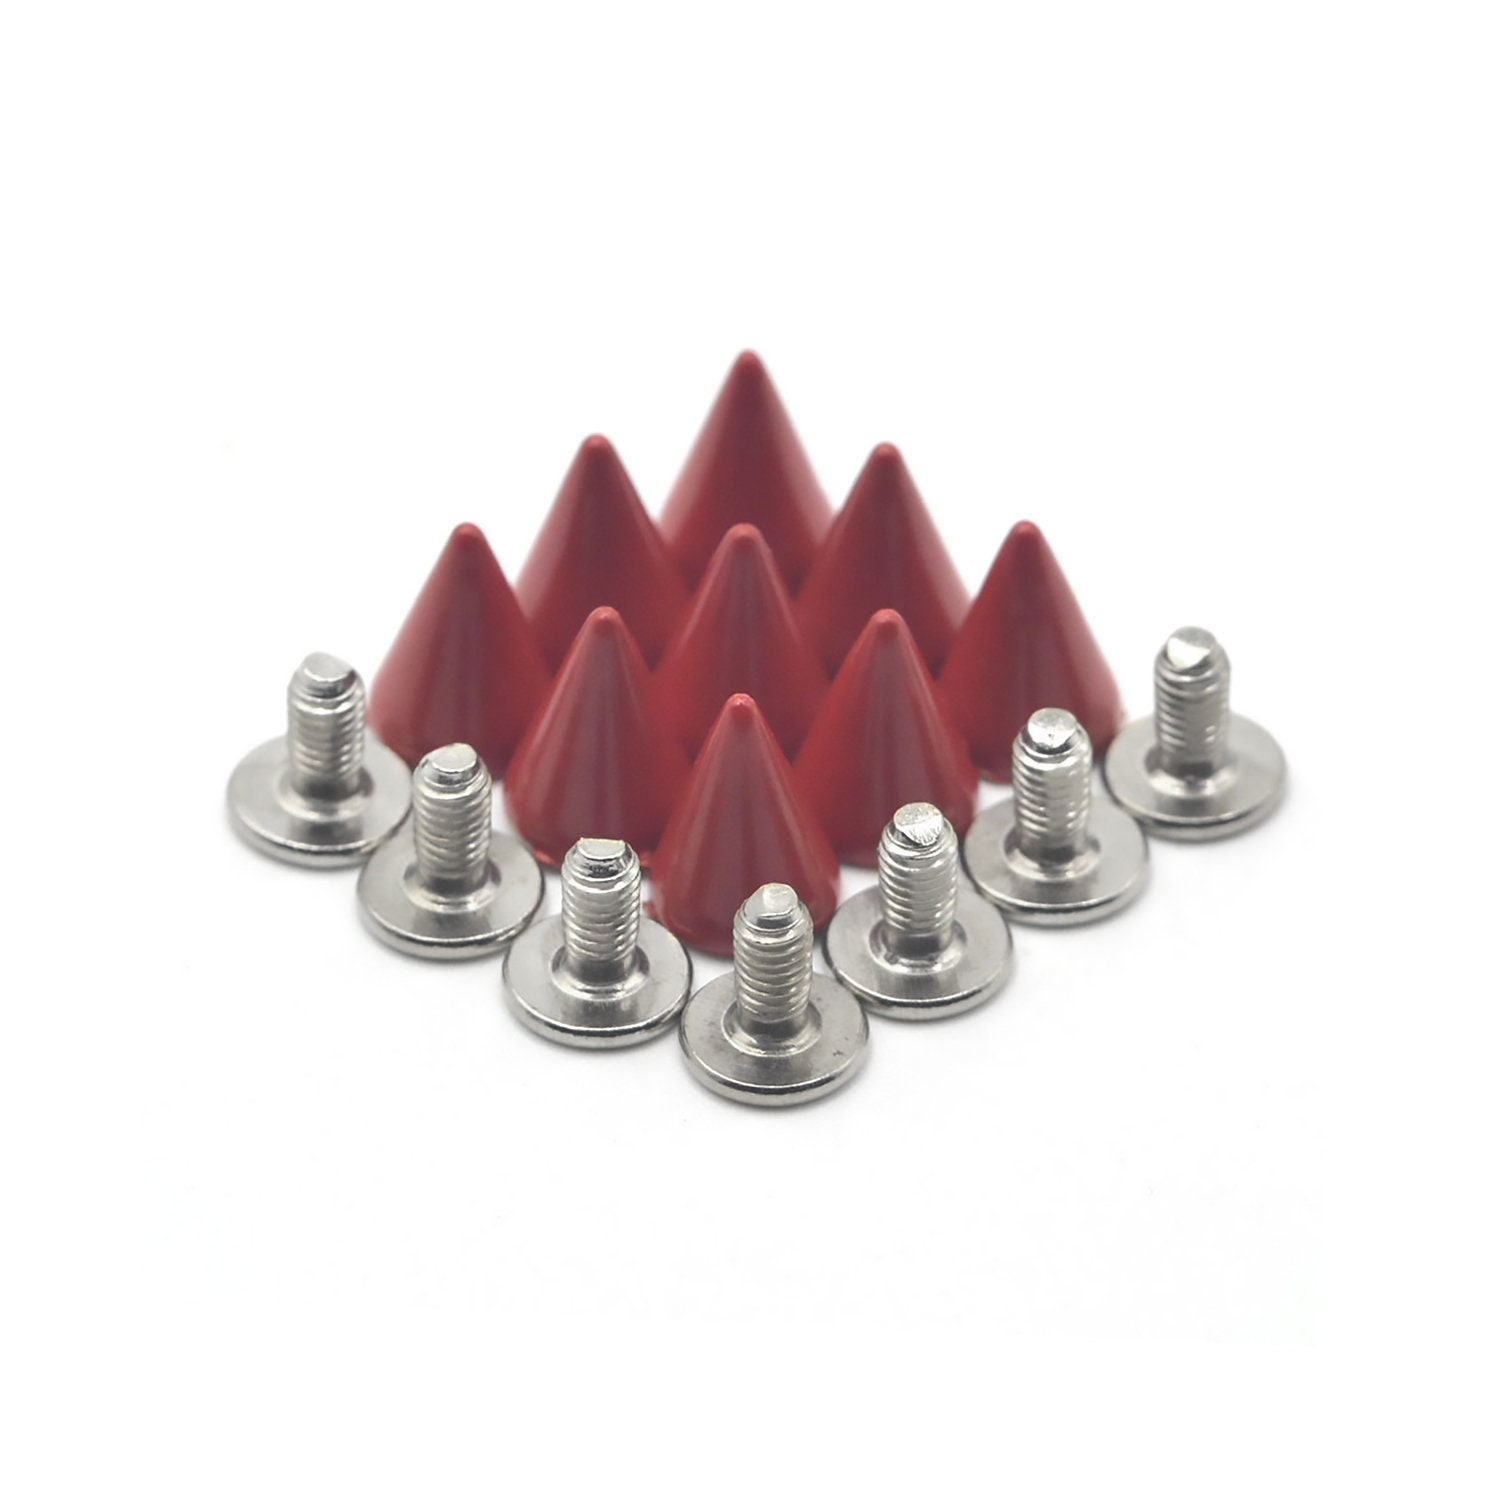 50PCS RED Cone Rivets Screw Punk Studs Leather Crafts B